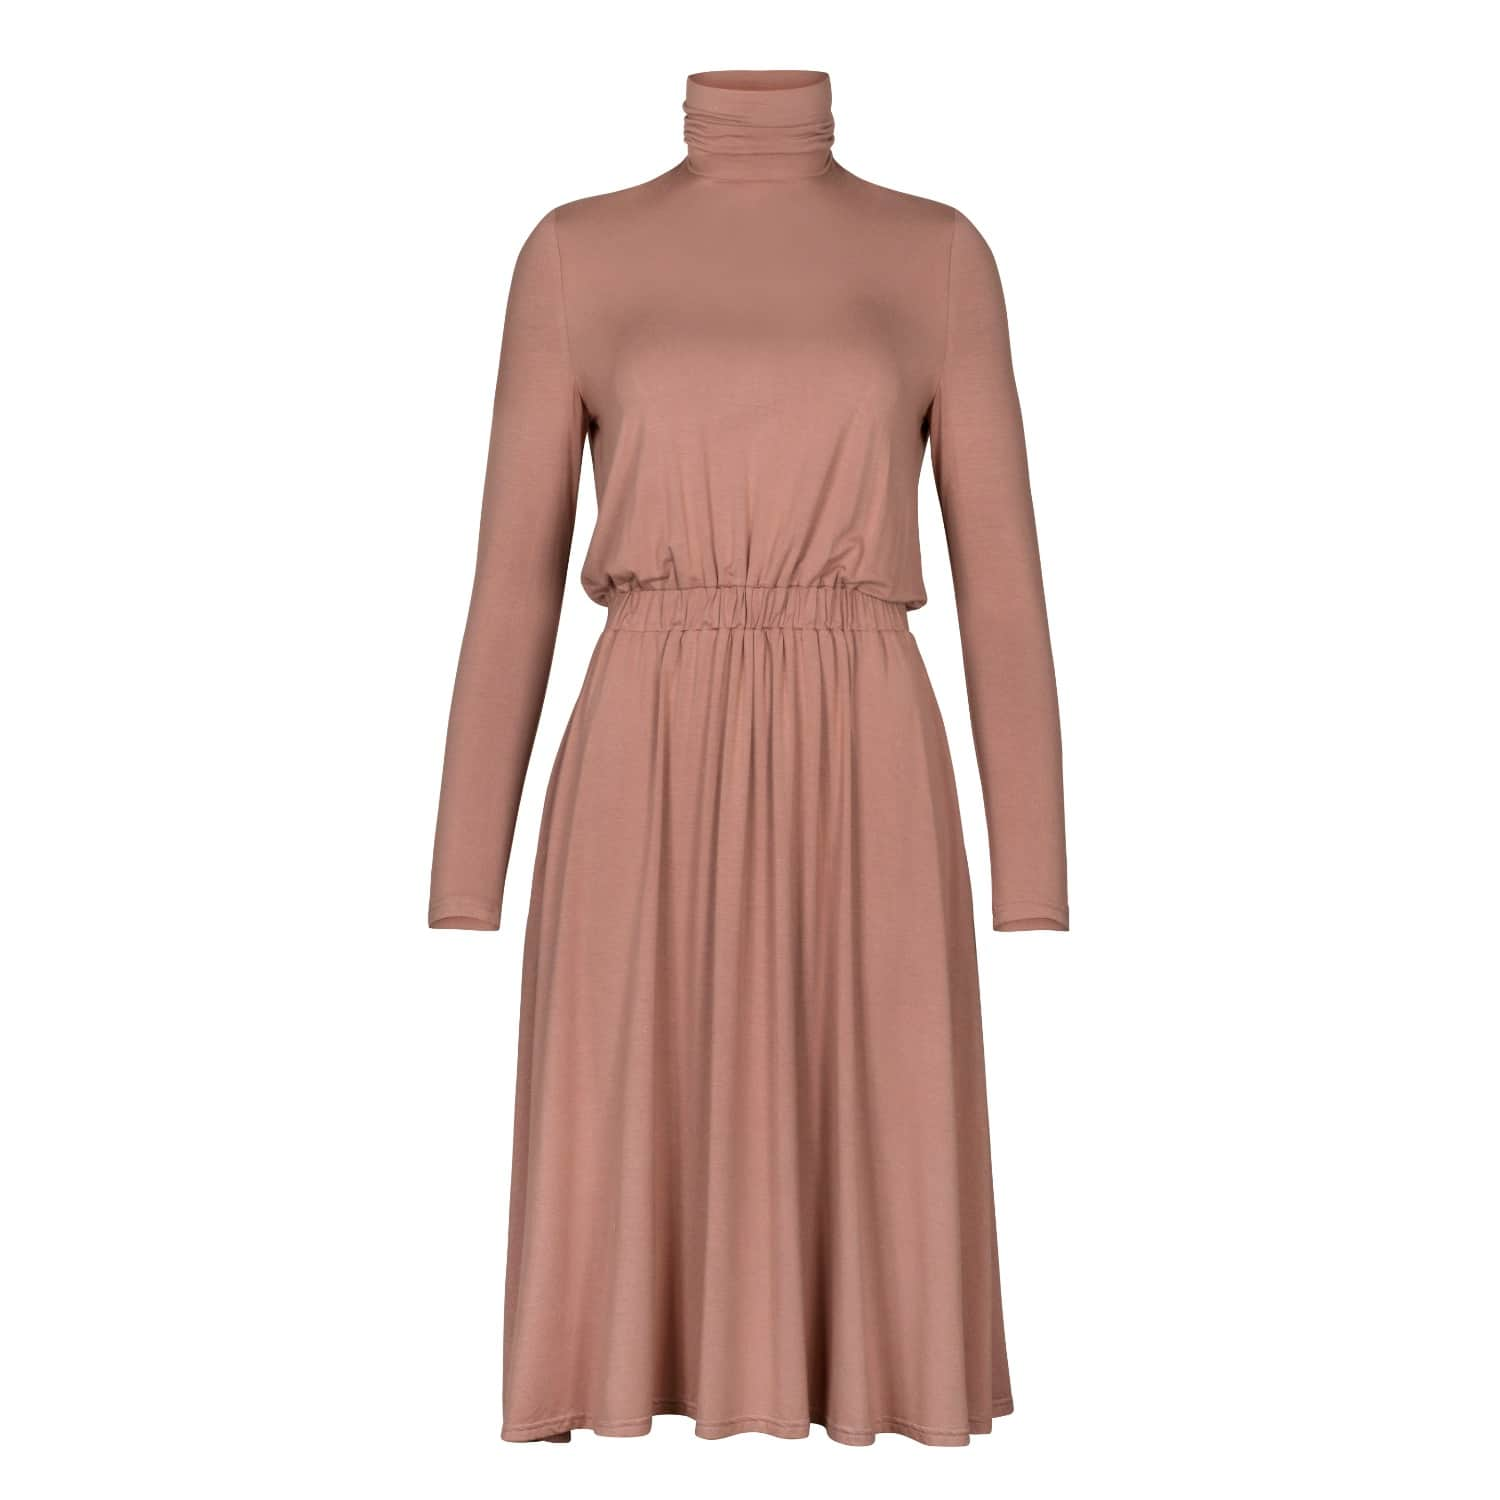 Turtleneck Jersey Dress With Elastic Ruched Waistband In Blush ...